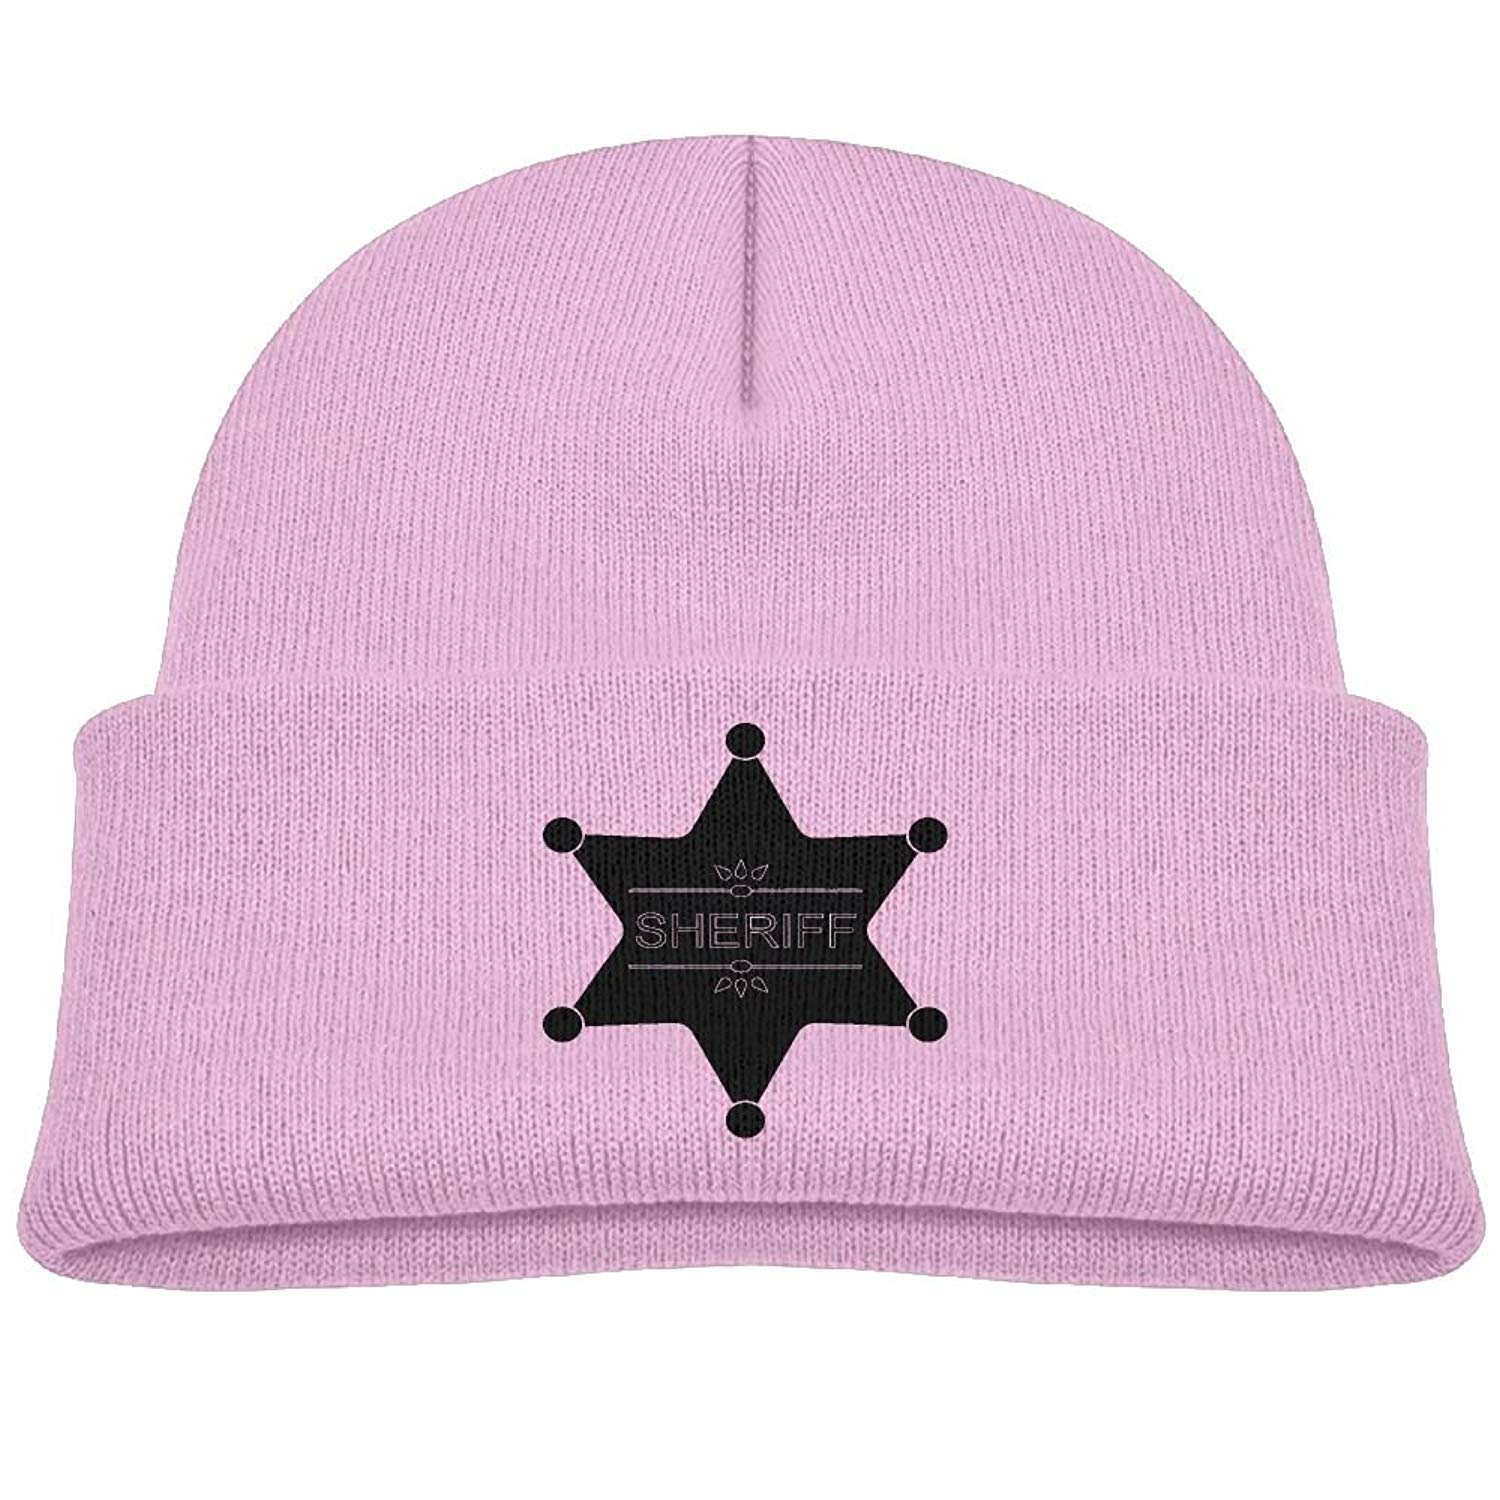 fd25f5acd40 Get Quotations · Raining Sunlight Kids Humor Old West Sheriff Badge Black  Casual Flexible Winter Knit Hats   Ski